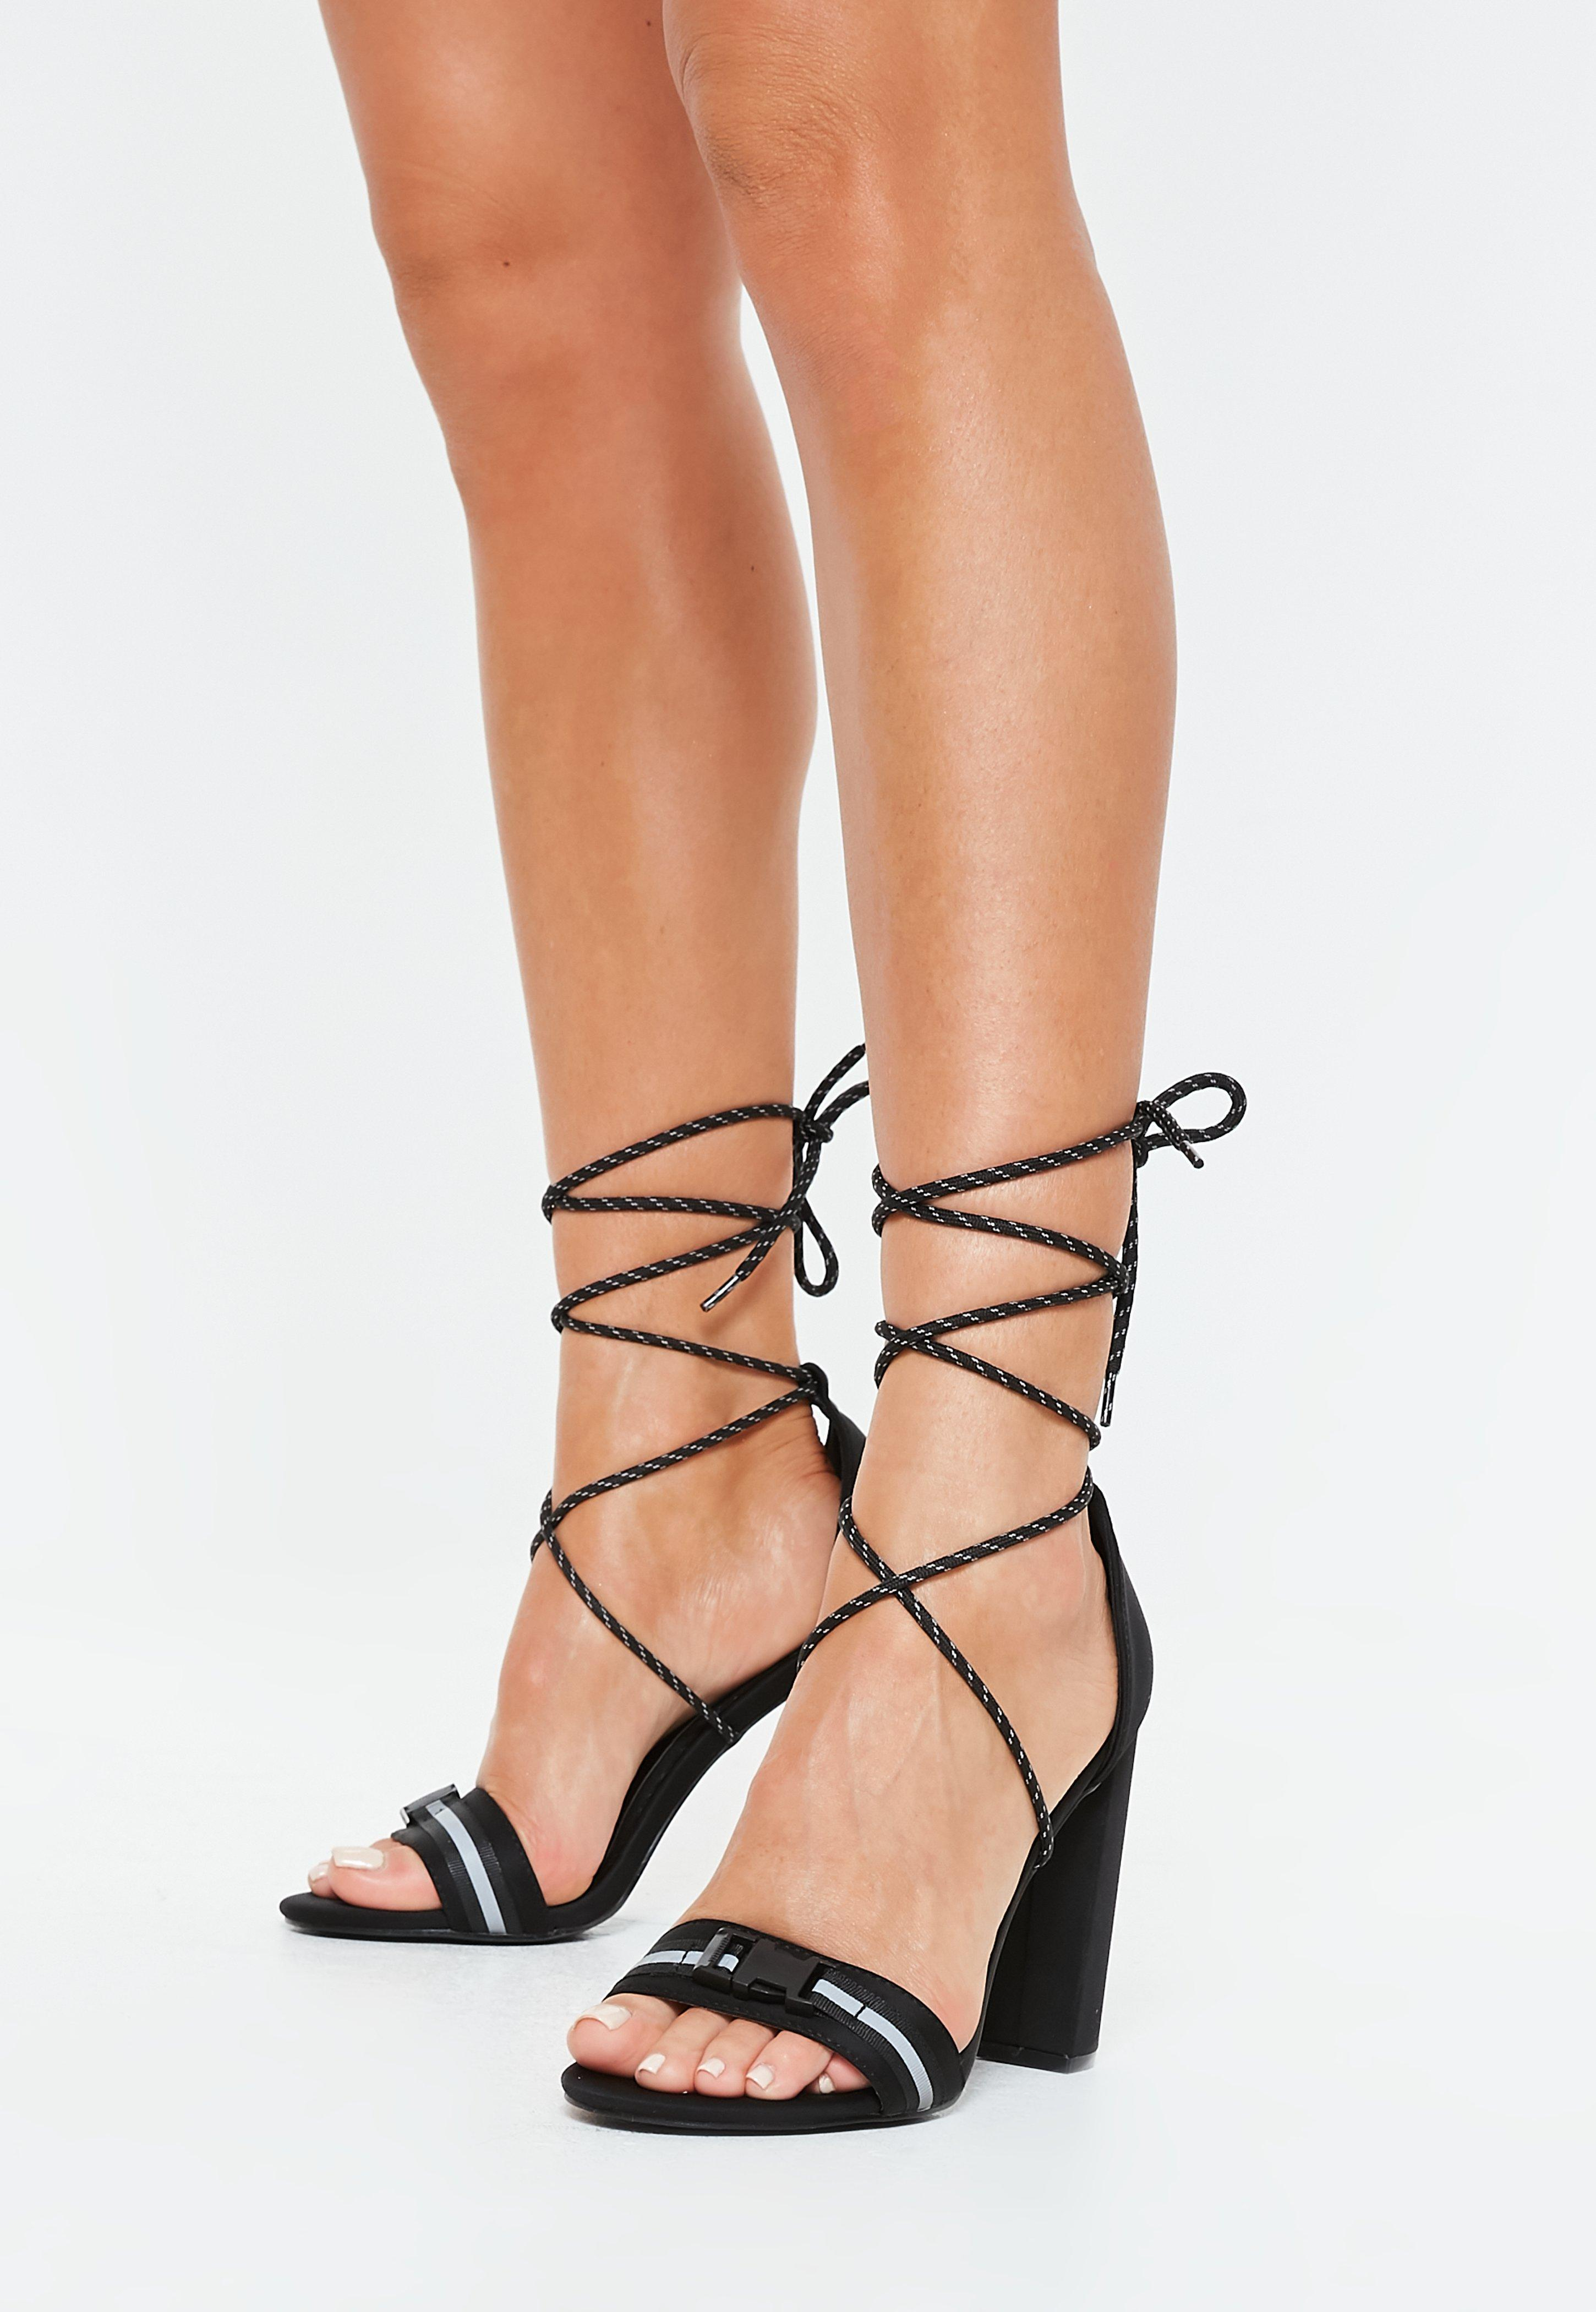 f8d382f1a487 Lyst - Missguided Black Reflective Strap Block Heel Sandals in Black